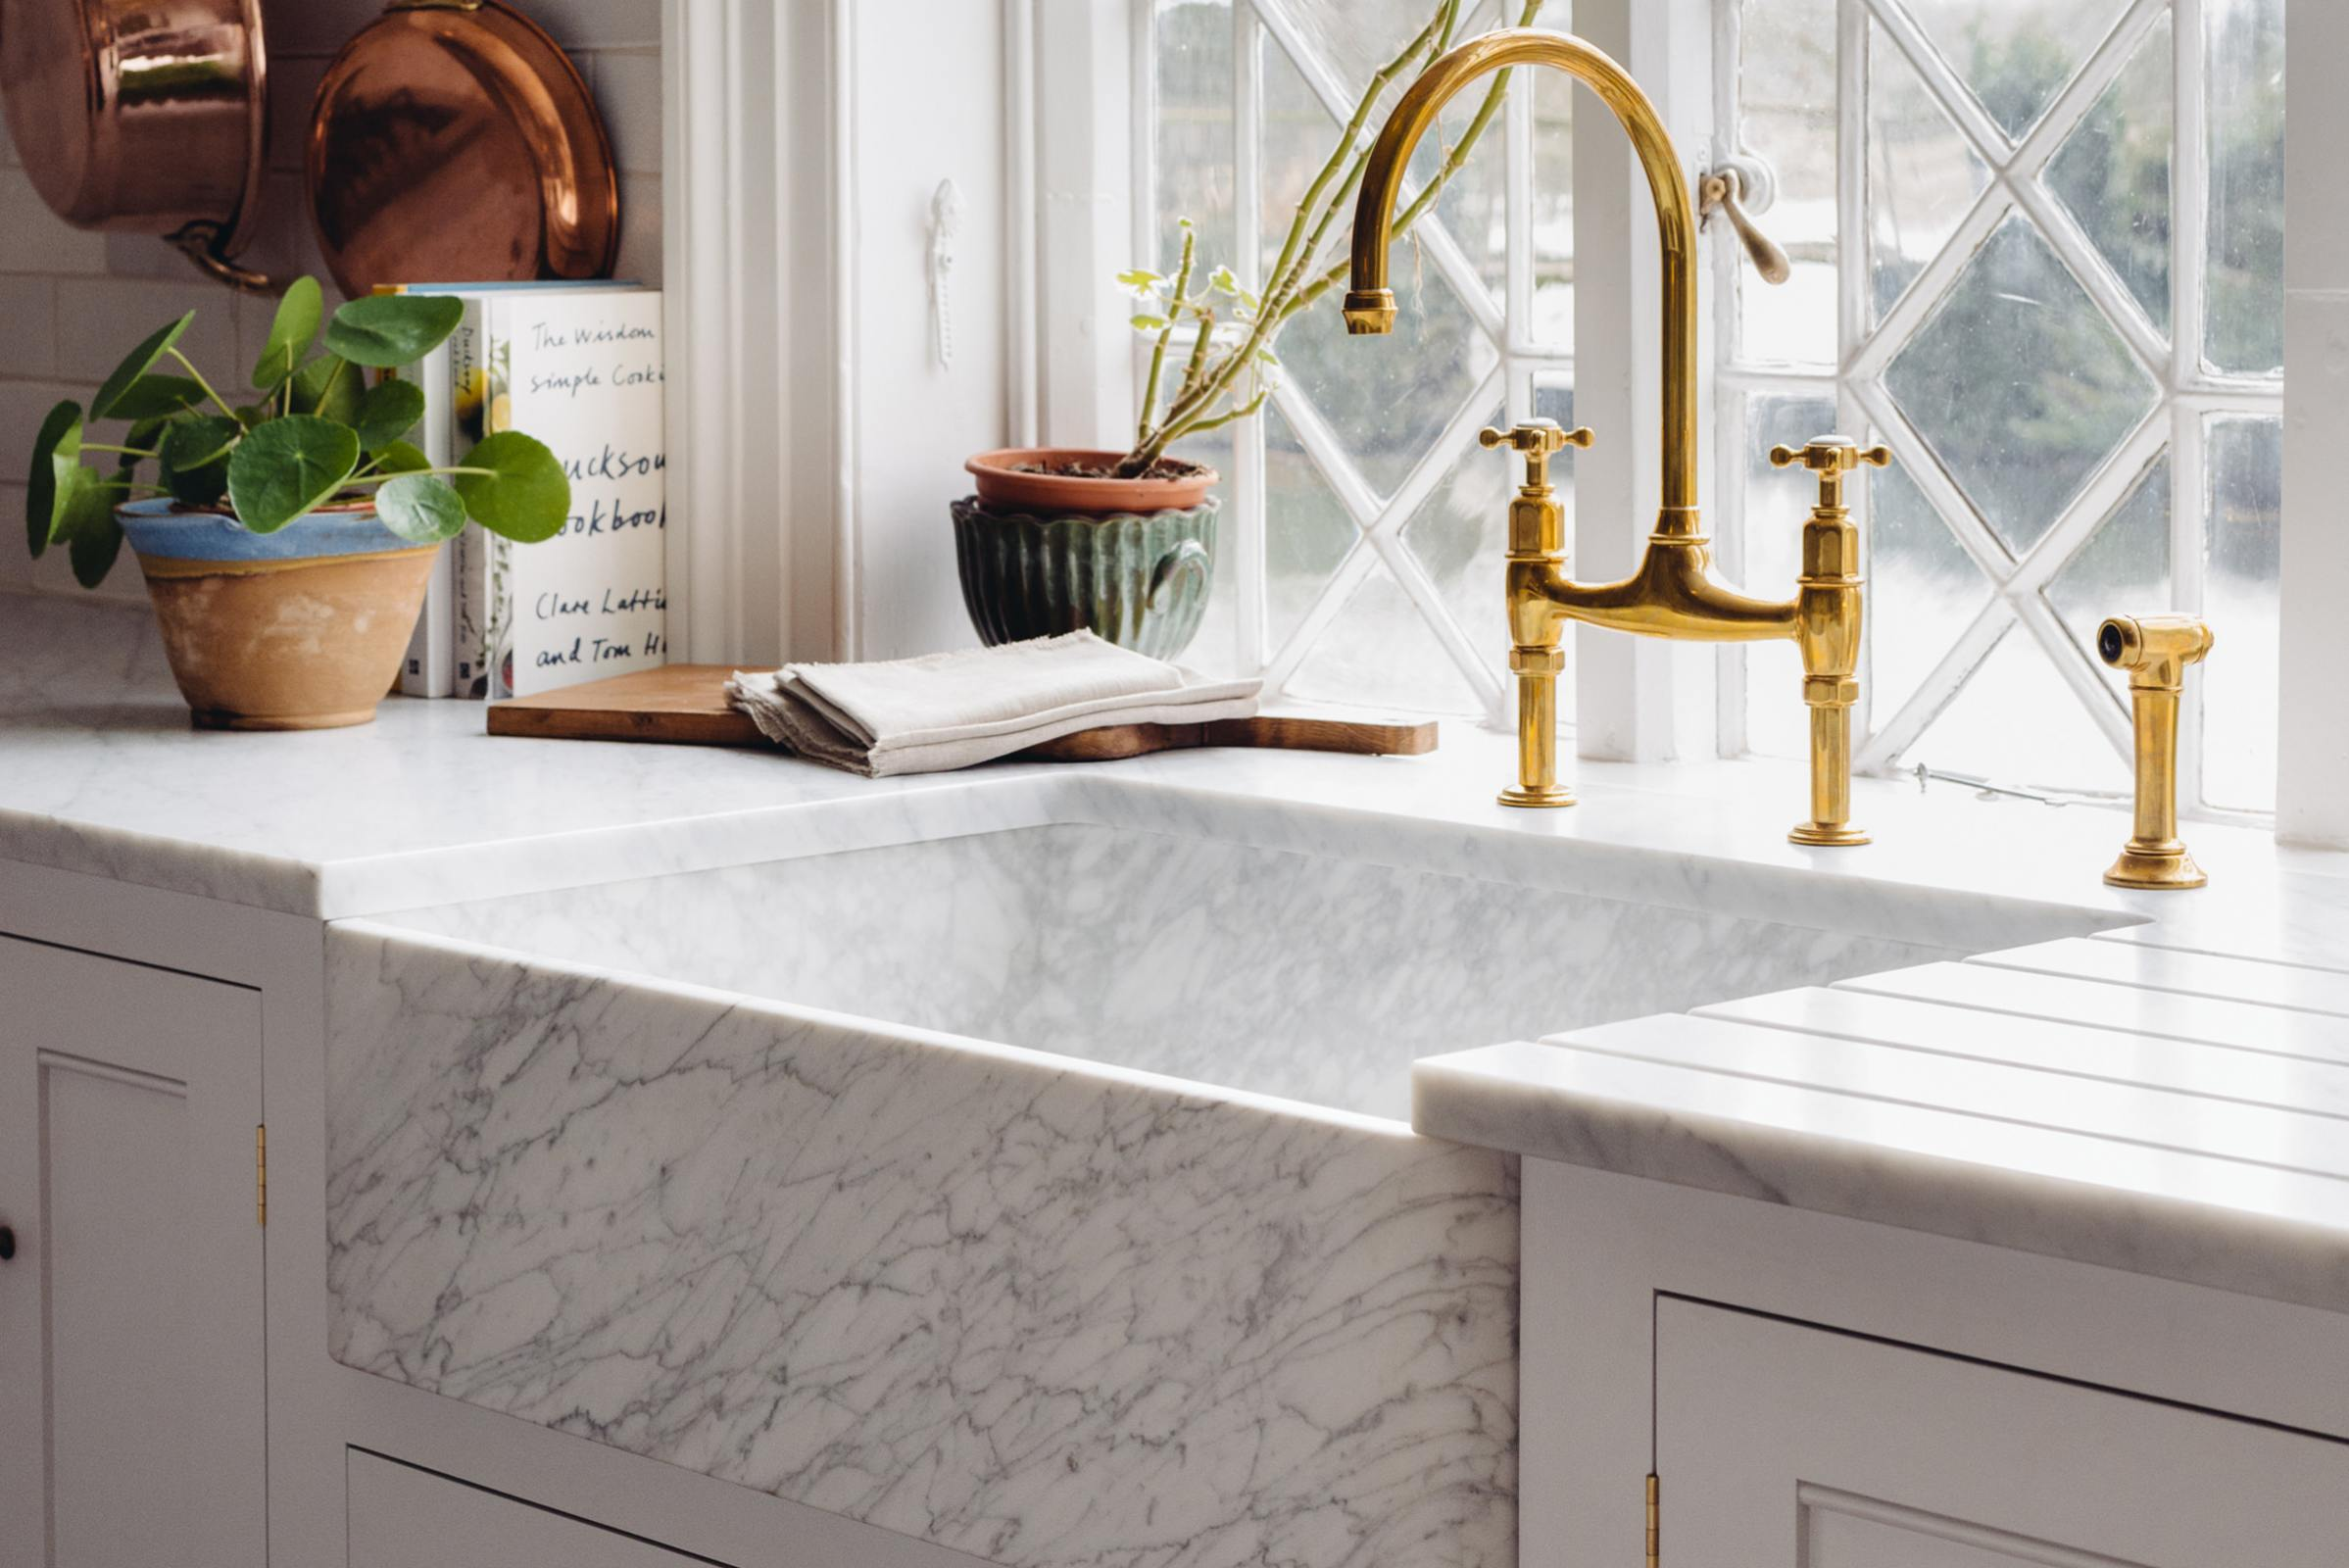 Milano Penthouse 31 1/2'' Single Marble Sink photo 2